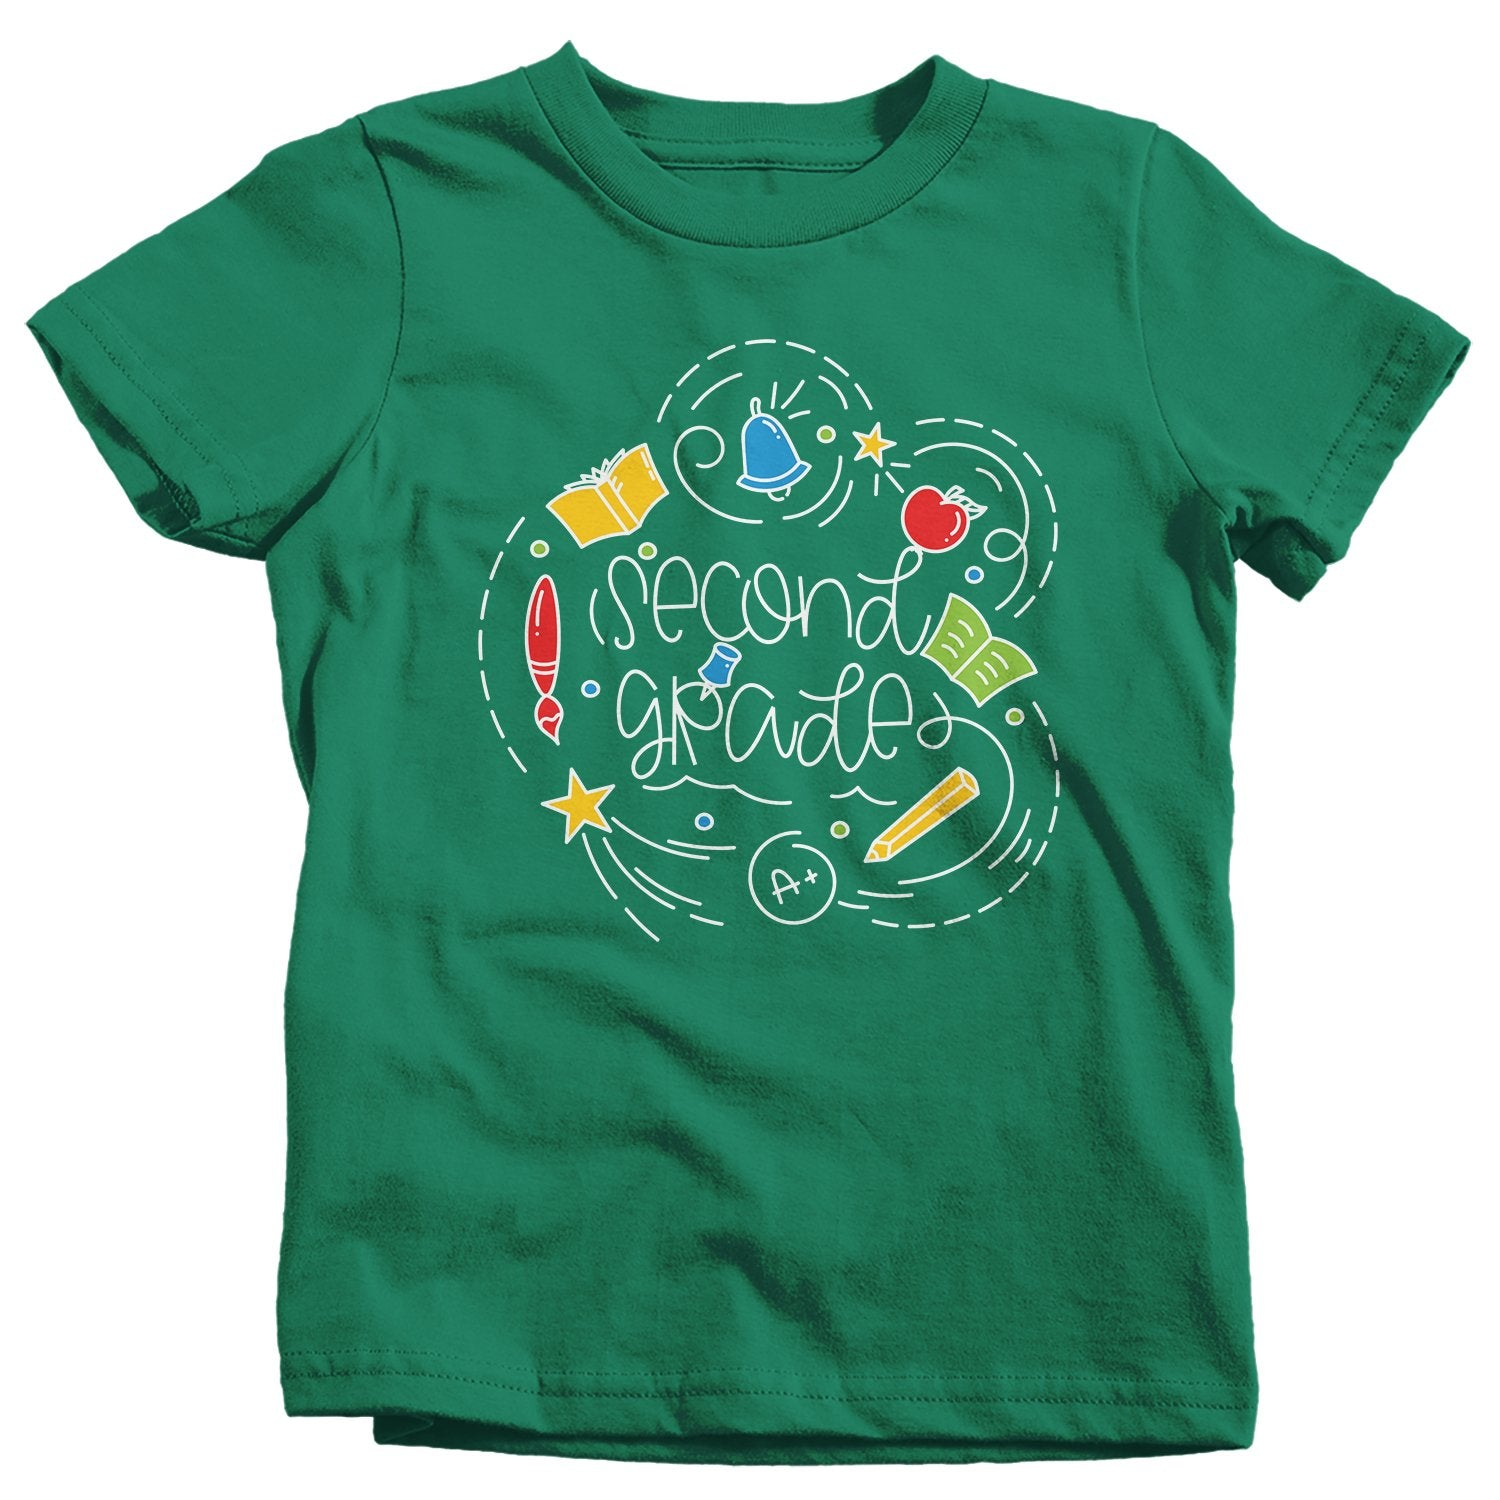 Kids Second Grade T Shirt 2nd Grade Shirt Boy's Girl's